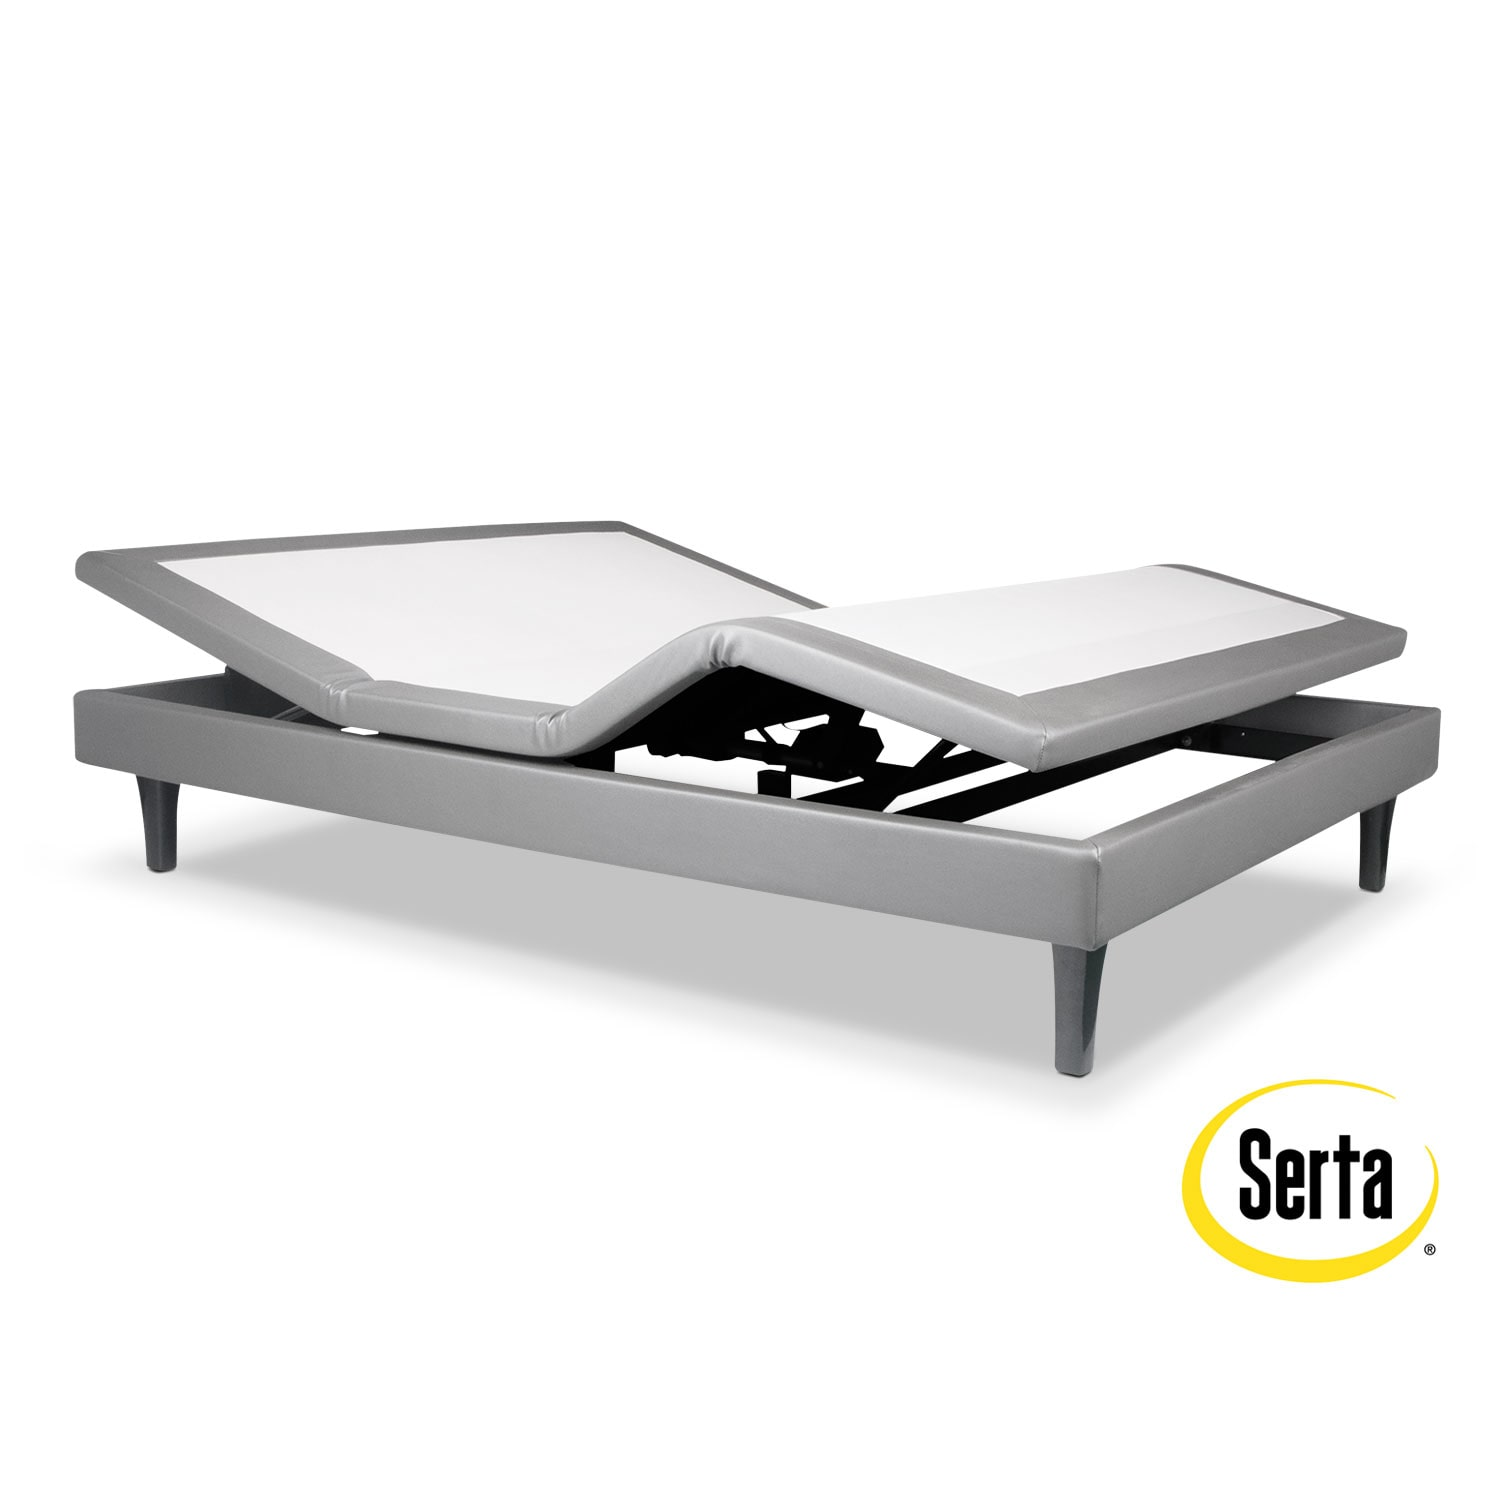 serta motion perfect iii twin xl adjustable base by serta - Serta Bed Frame